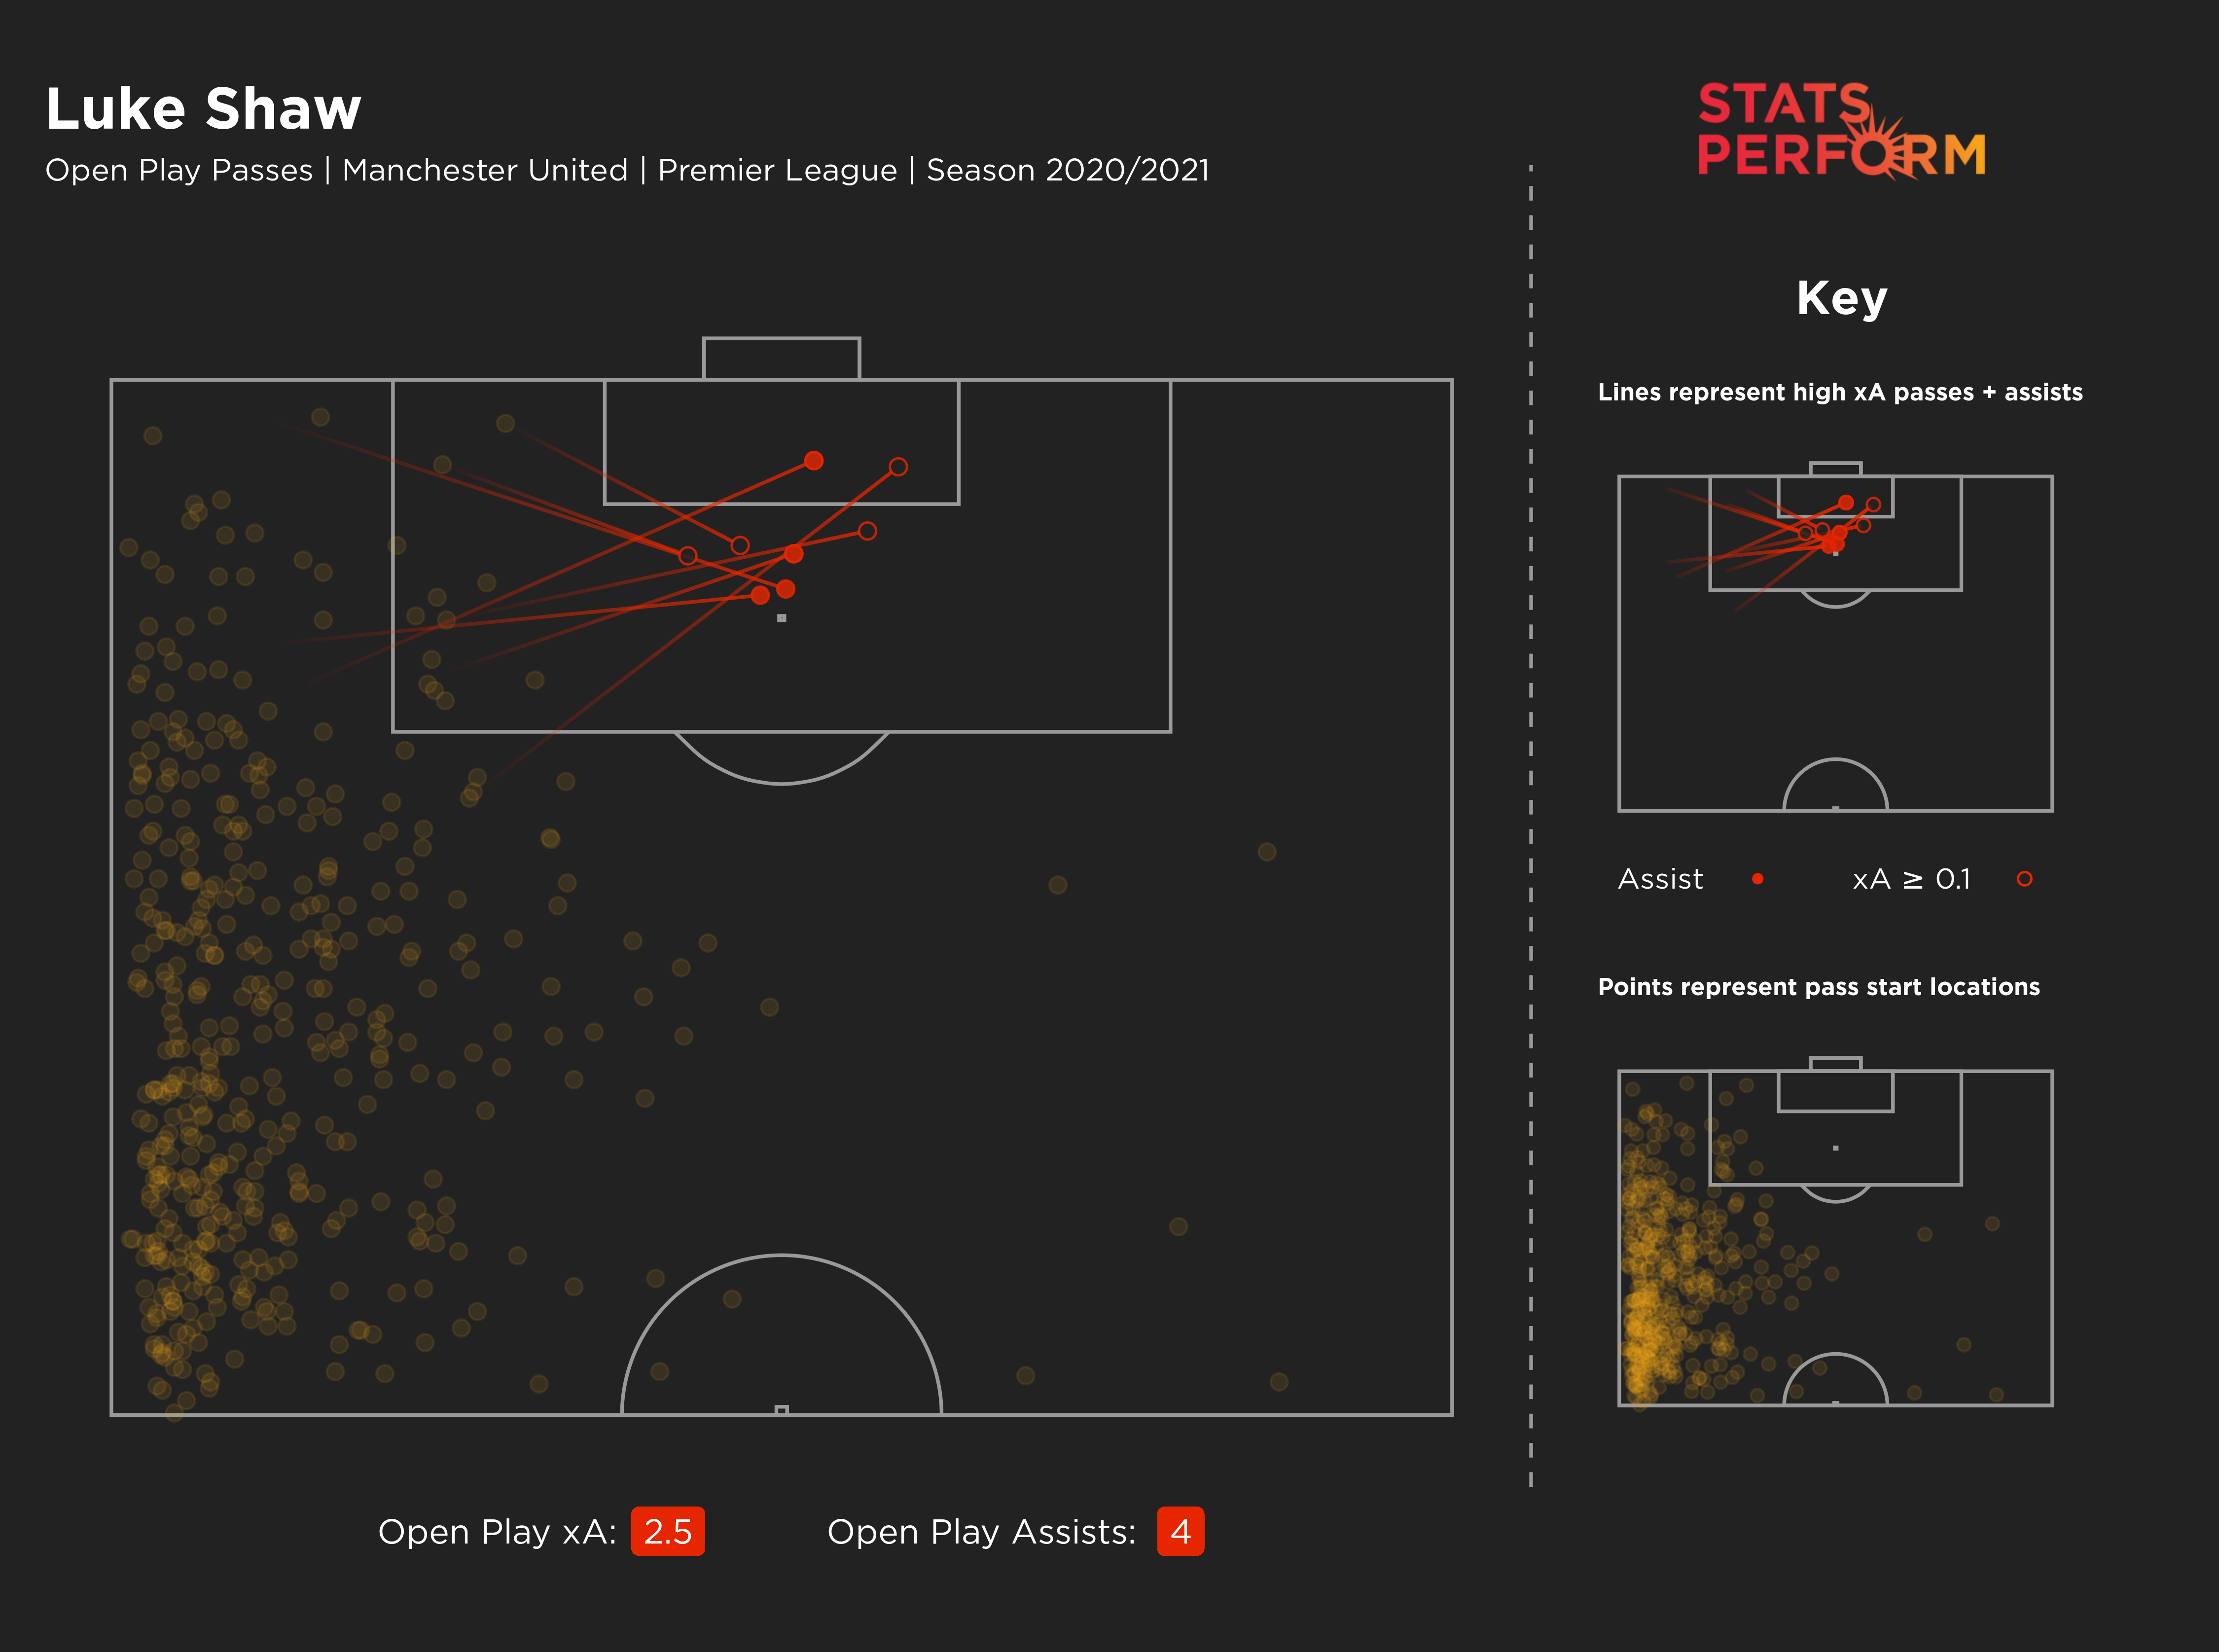 Luke Shaw's expected assists (xA) map for 2020-21